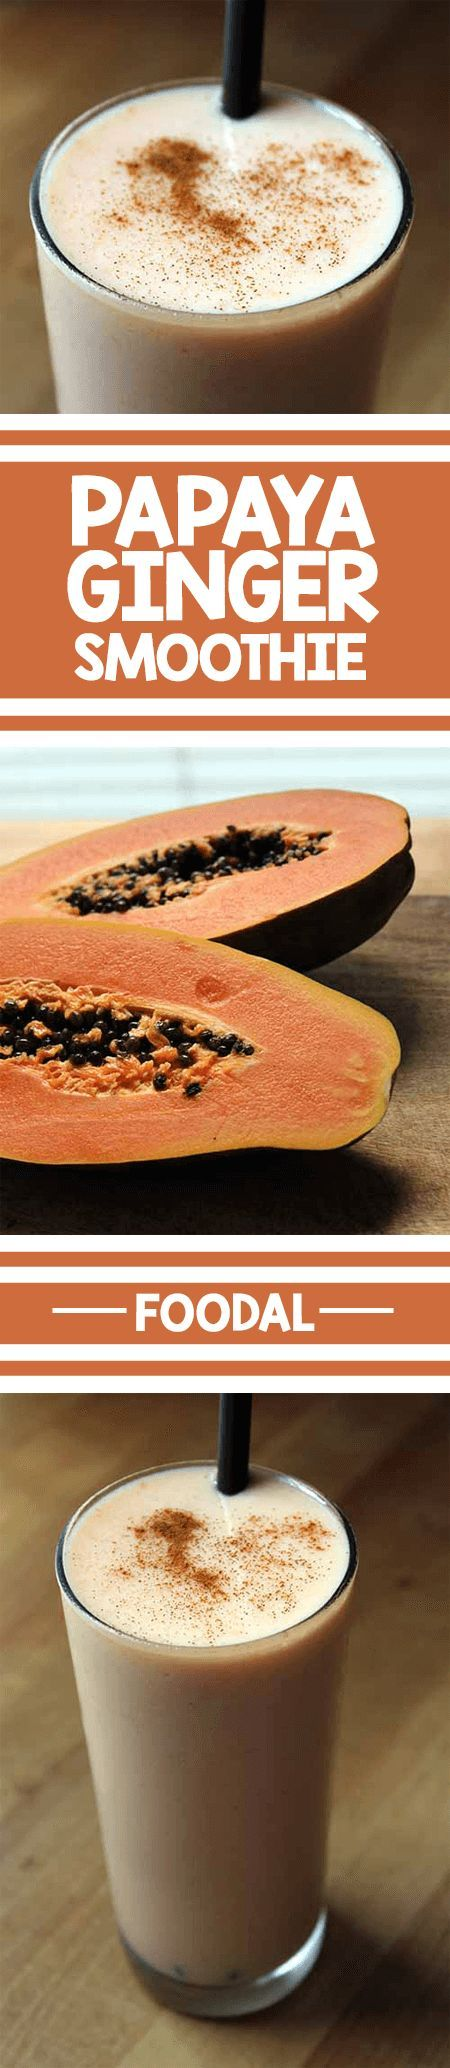 Looking for a refreshing and spicy drink that is also healthy? We have a delicious papaya ginger smoothie recipe right here at Foodal. It is easy to make, without an abundance of ingredients. Get the recipe now. http://foodal.com/drinks-2/smoothies/papaya-ginger-smoothie/